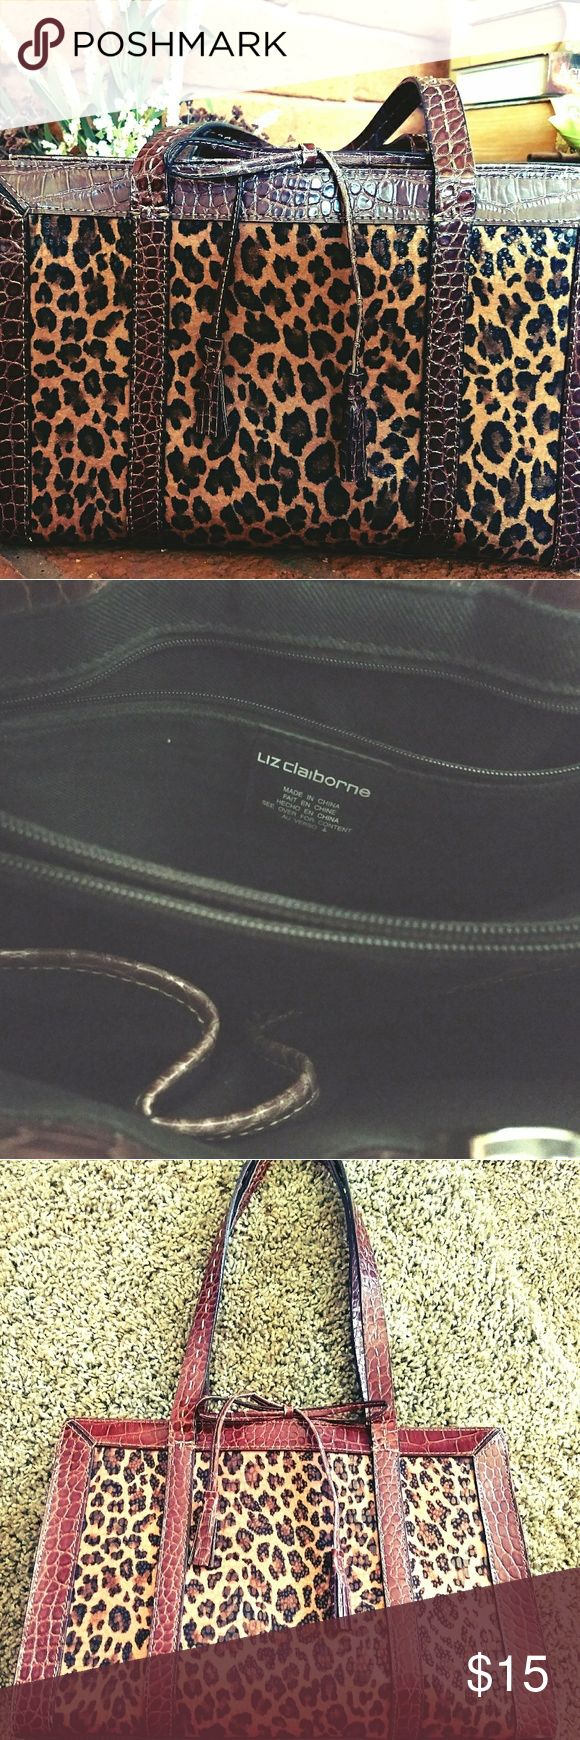 Liz Claiborne Cheetah & Croc Embossed Purse Make a statement with this piece! Croc embossed detail on straps and handle. Cheetah print makes a sassy statement! Lots of room inside to hold everything you need. Great condition! Liz Claiborne Bags